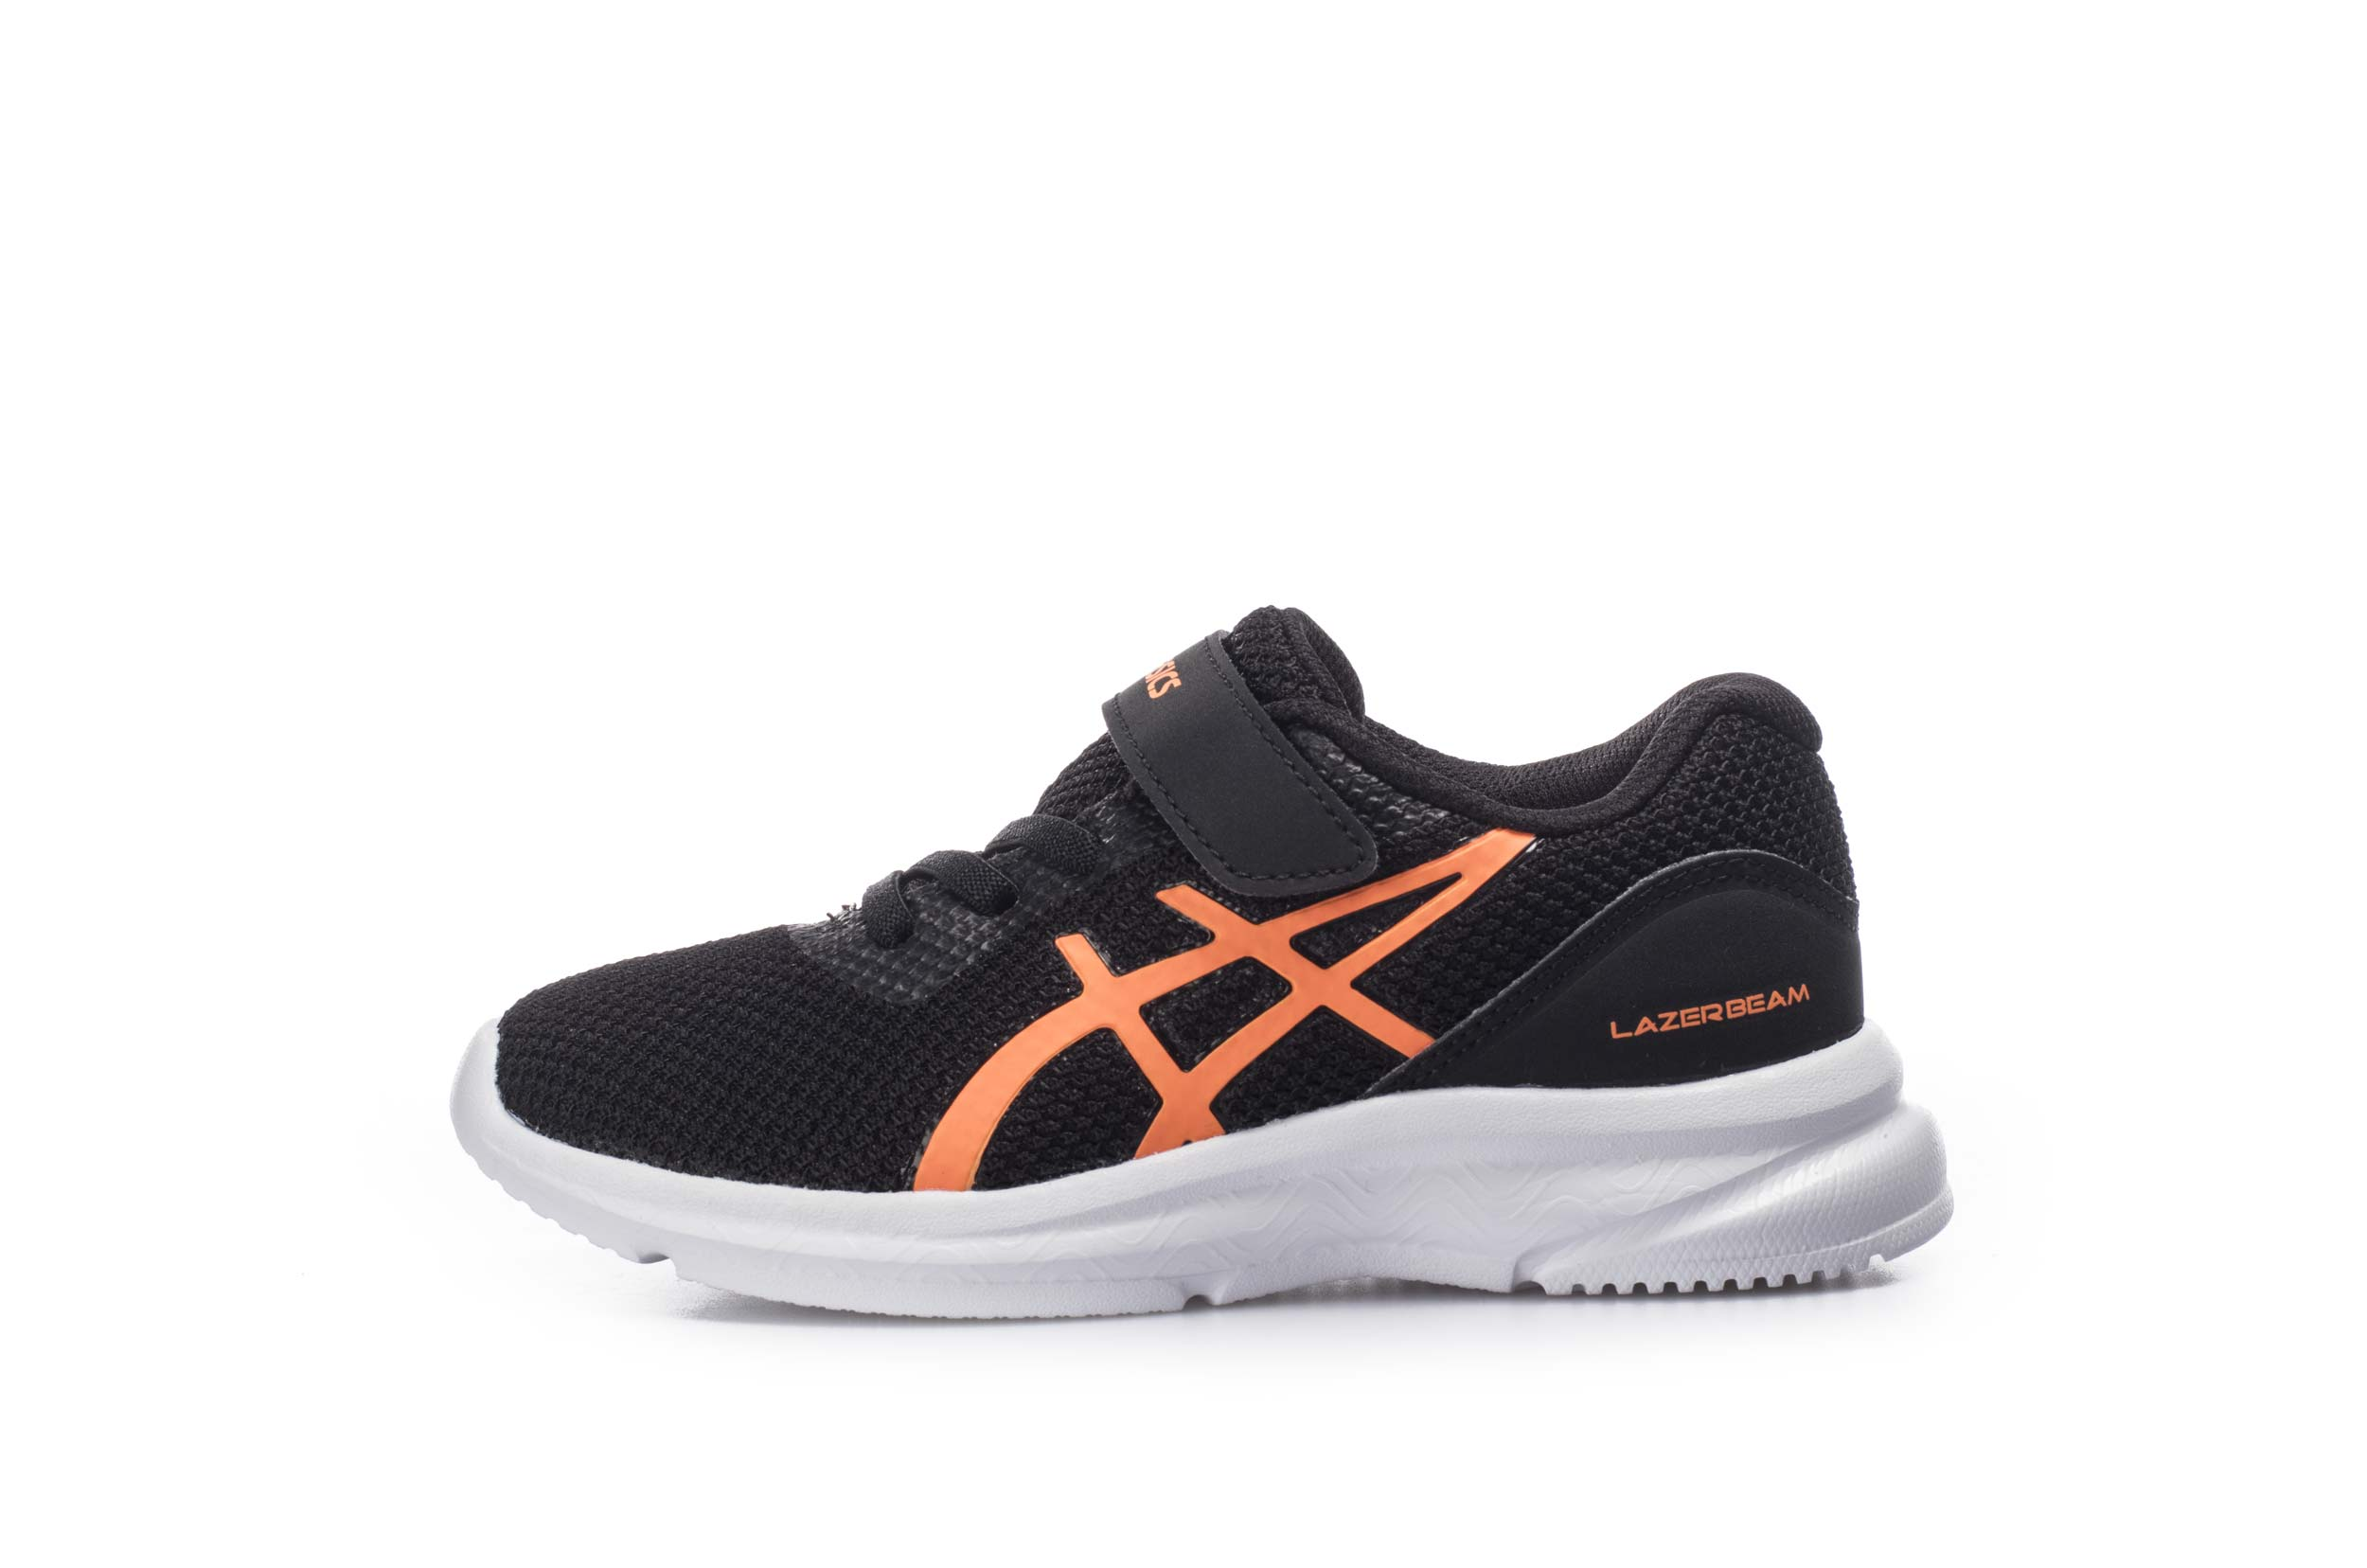 ASICS LAZERBEAM PS 1014A134-001 Μαύρο